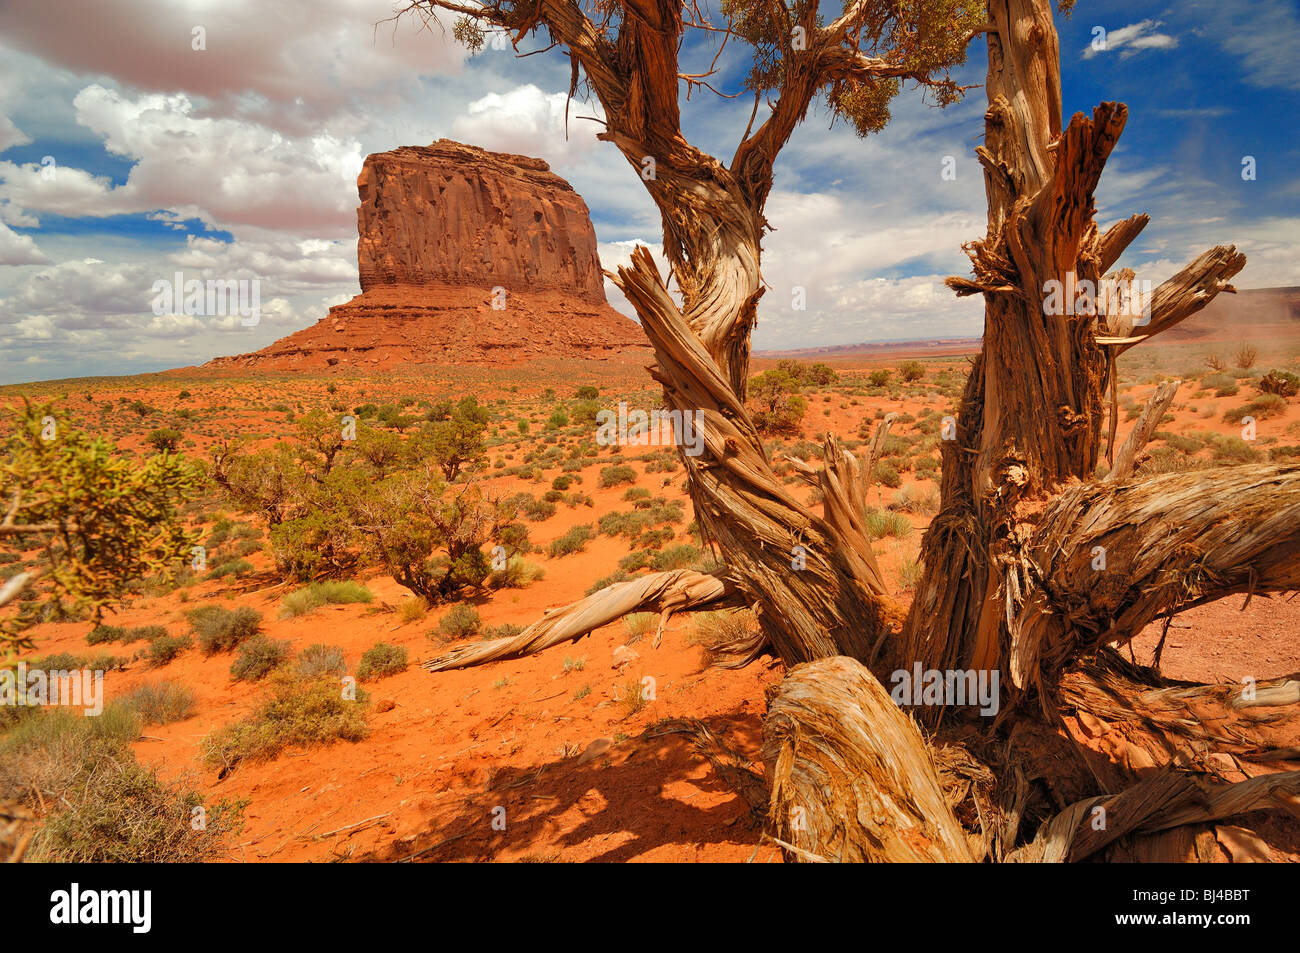 Merrick Butte and an ancient Utah Juniper tree at Monument Valley in Arizona, United States of America. - Stock Image